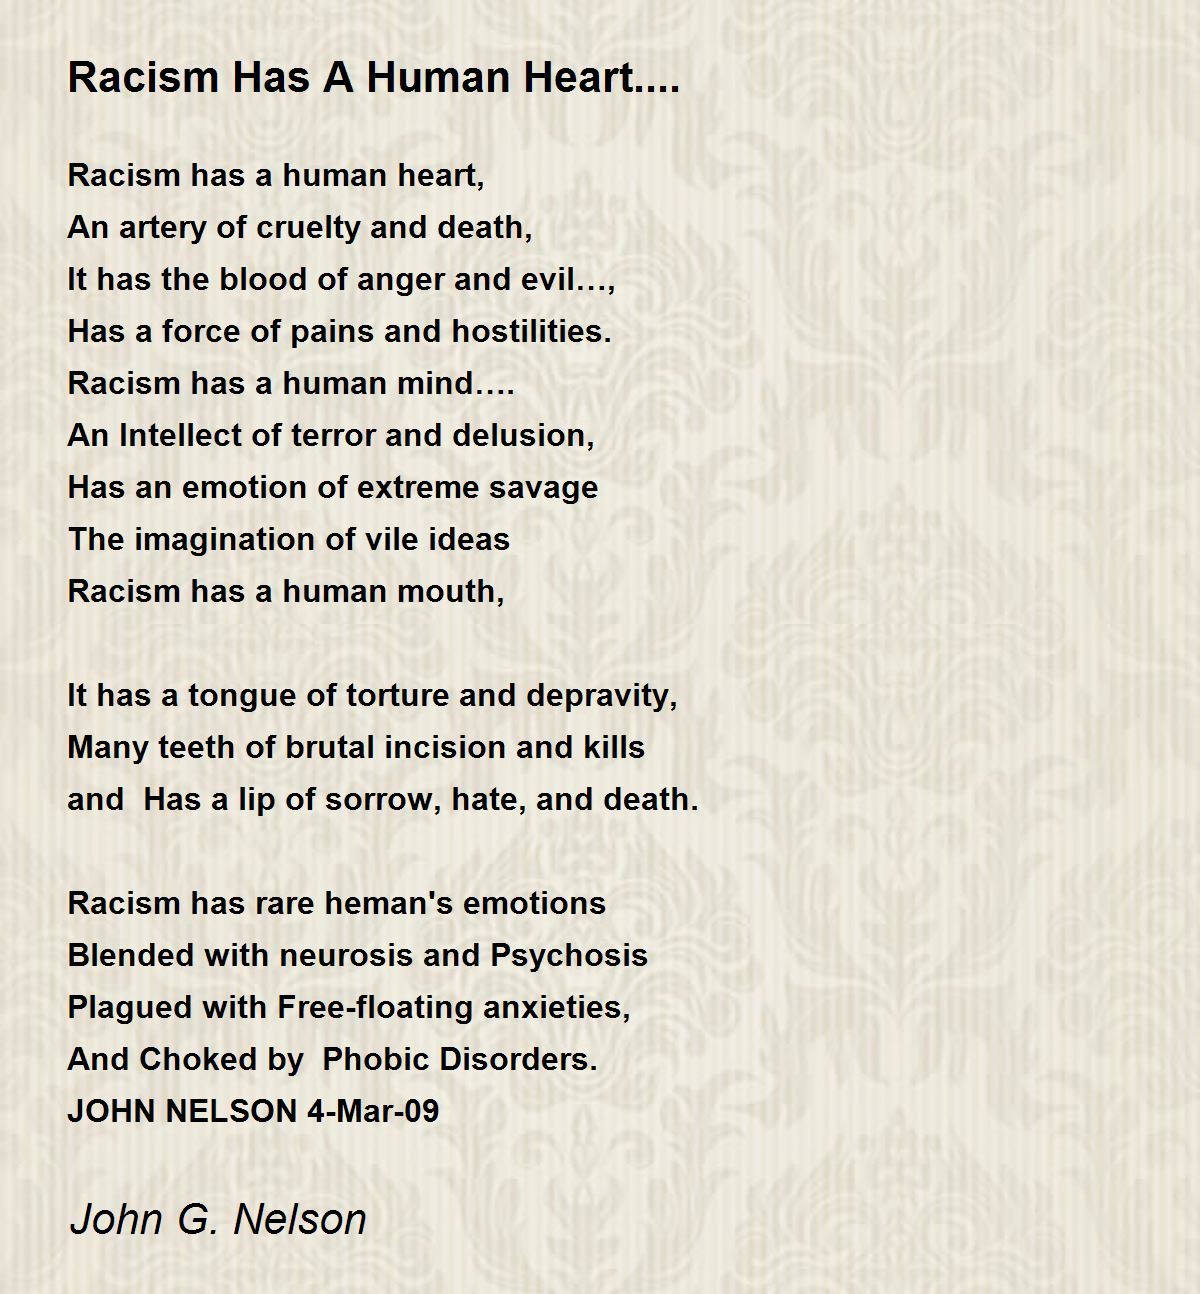 the african american struggle for equality in theme for english b a poem by langston hughes Research and analysis of langston hughes theme for english b rights movements by the african americans in this poem, hughes urges the people not to.